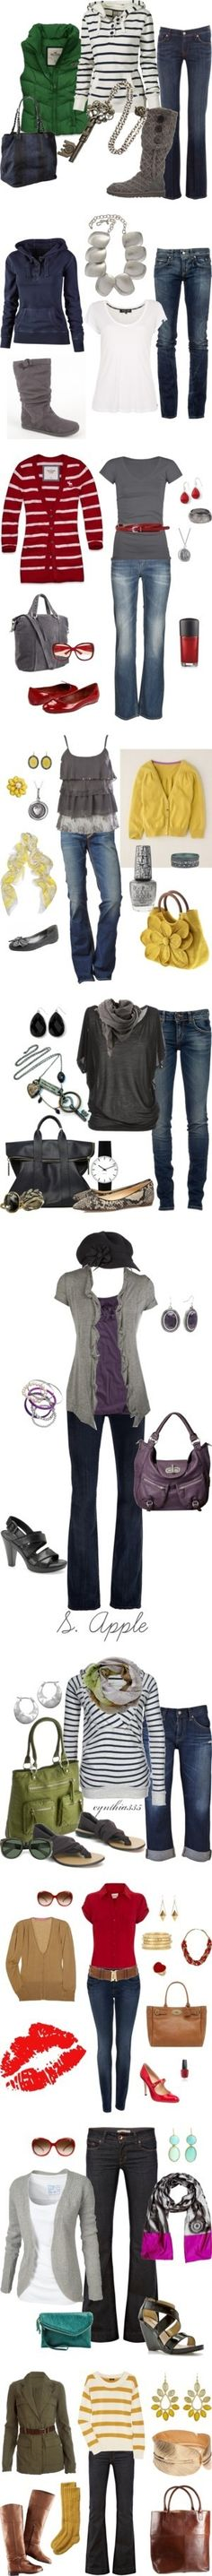 Every day style - love these outfits by Sacagawea